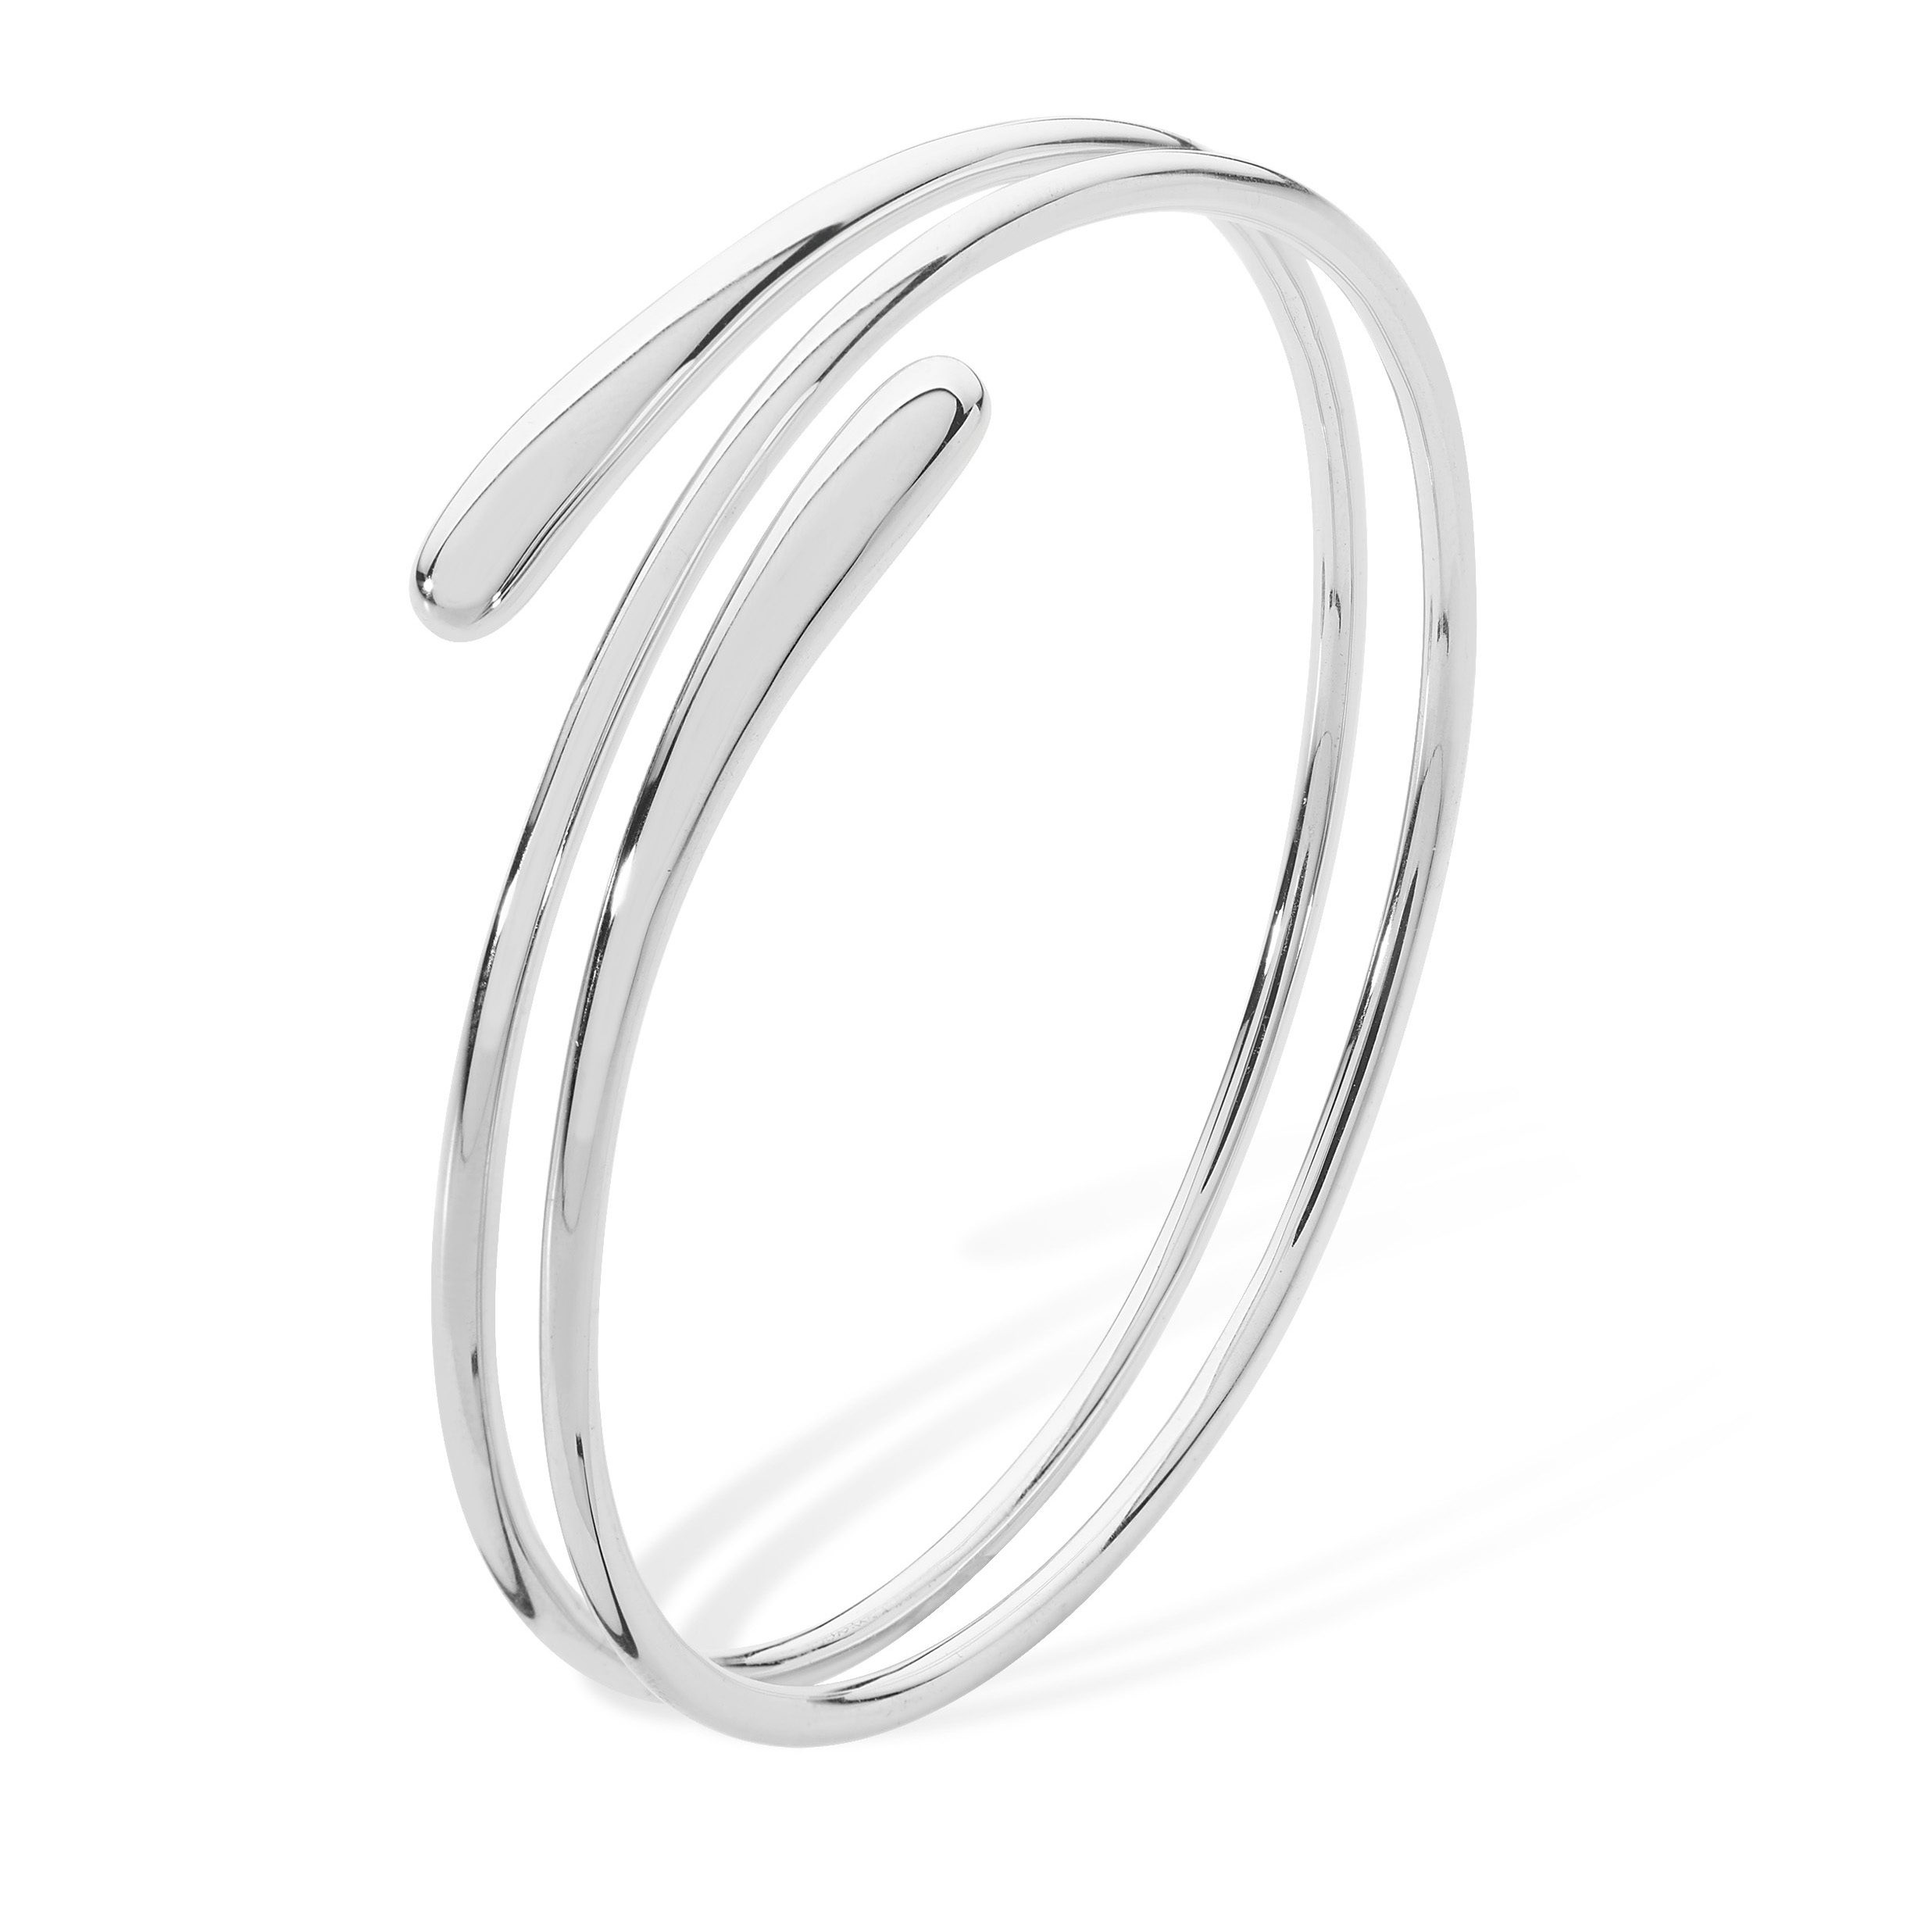 Lucy Q Coil Drip Bangle